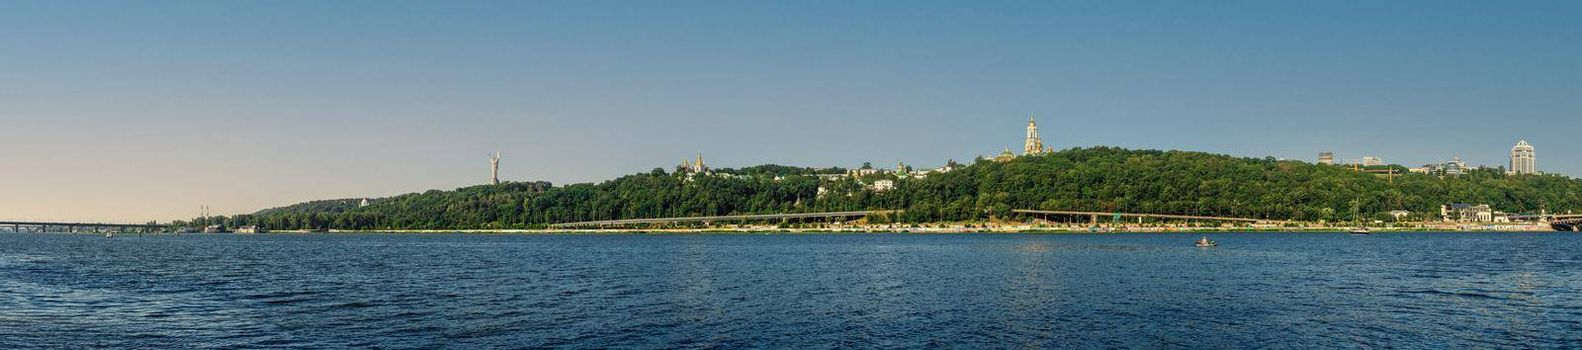 Kyiv, Ukraine 07.11.2020. View of the left bank and the Dnieper river in Kyiv, Ukraine, on a sunny summer morning